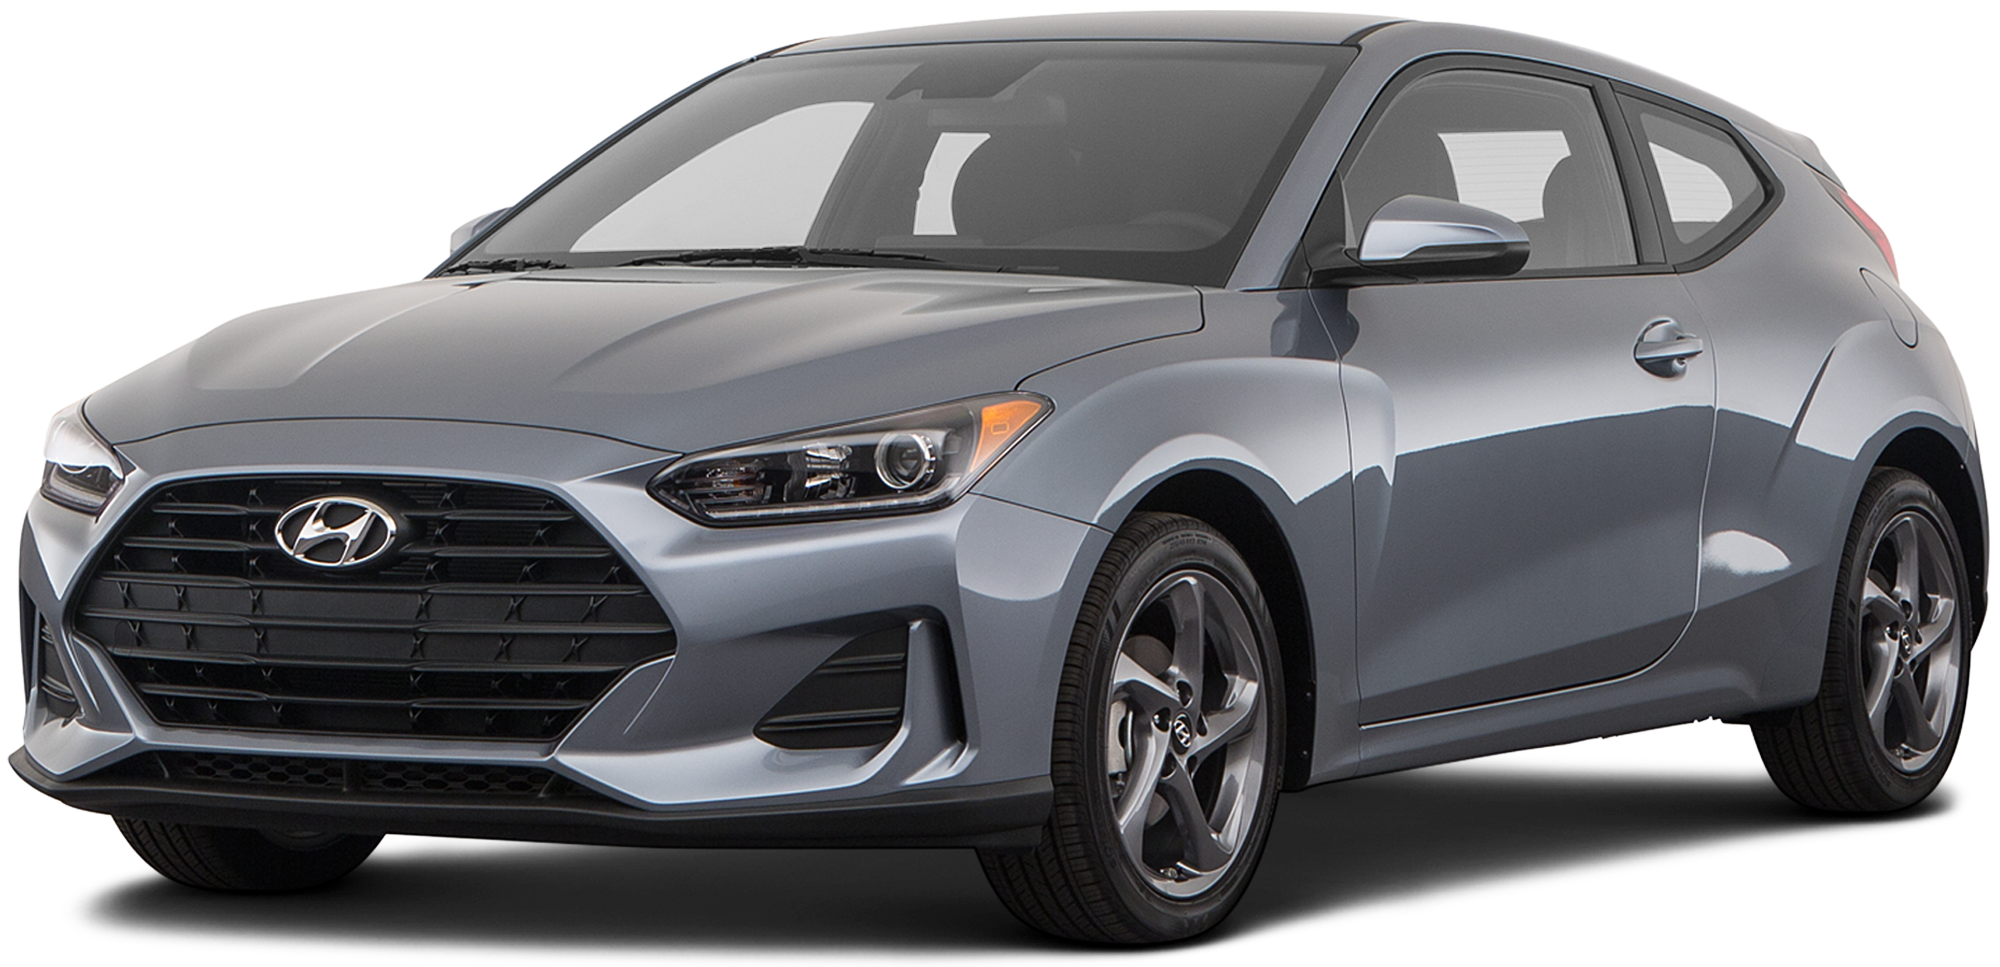 Autofair Ford Manchester Nh >> 2019 Hyundai Veloster Incentives, Specials & Offers in Manchester NH